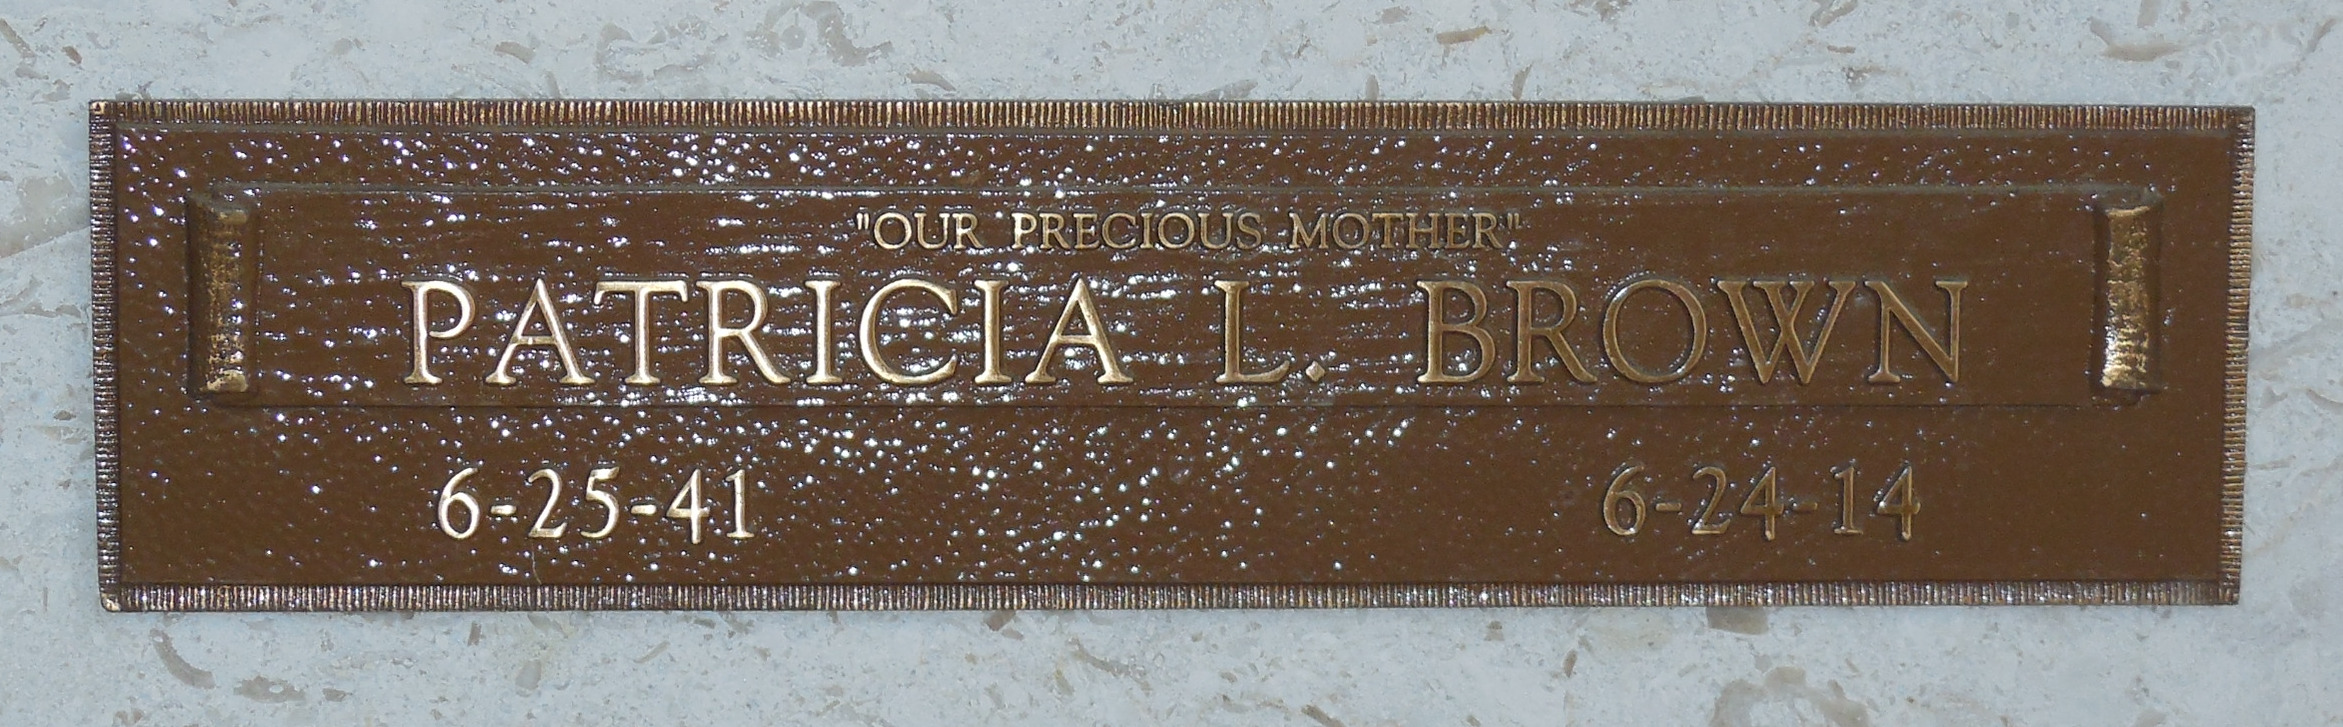 Patricia Louise Brown (1941-2014) - Find A Grave Memorial